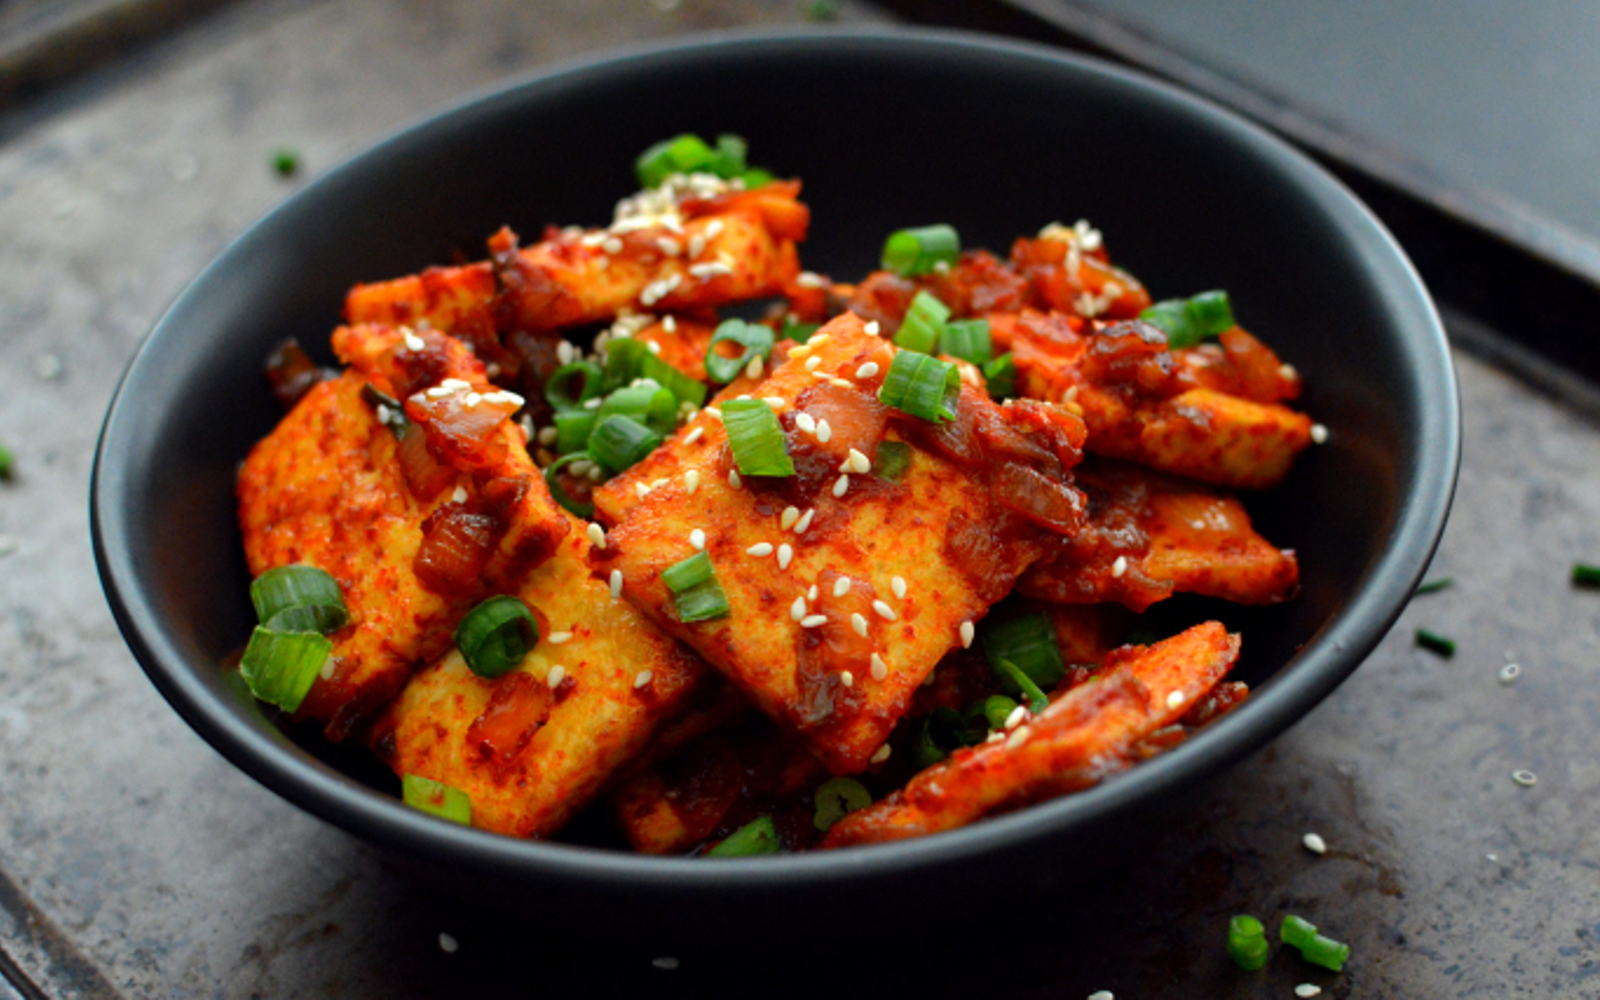 Dubu Jorim: Korean Spicy Braised Tofu